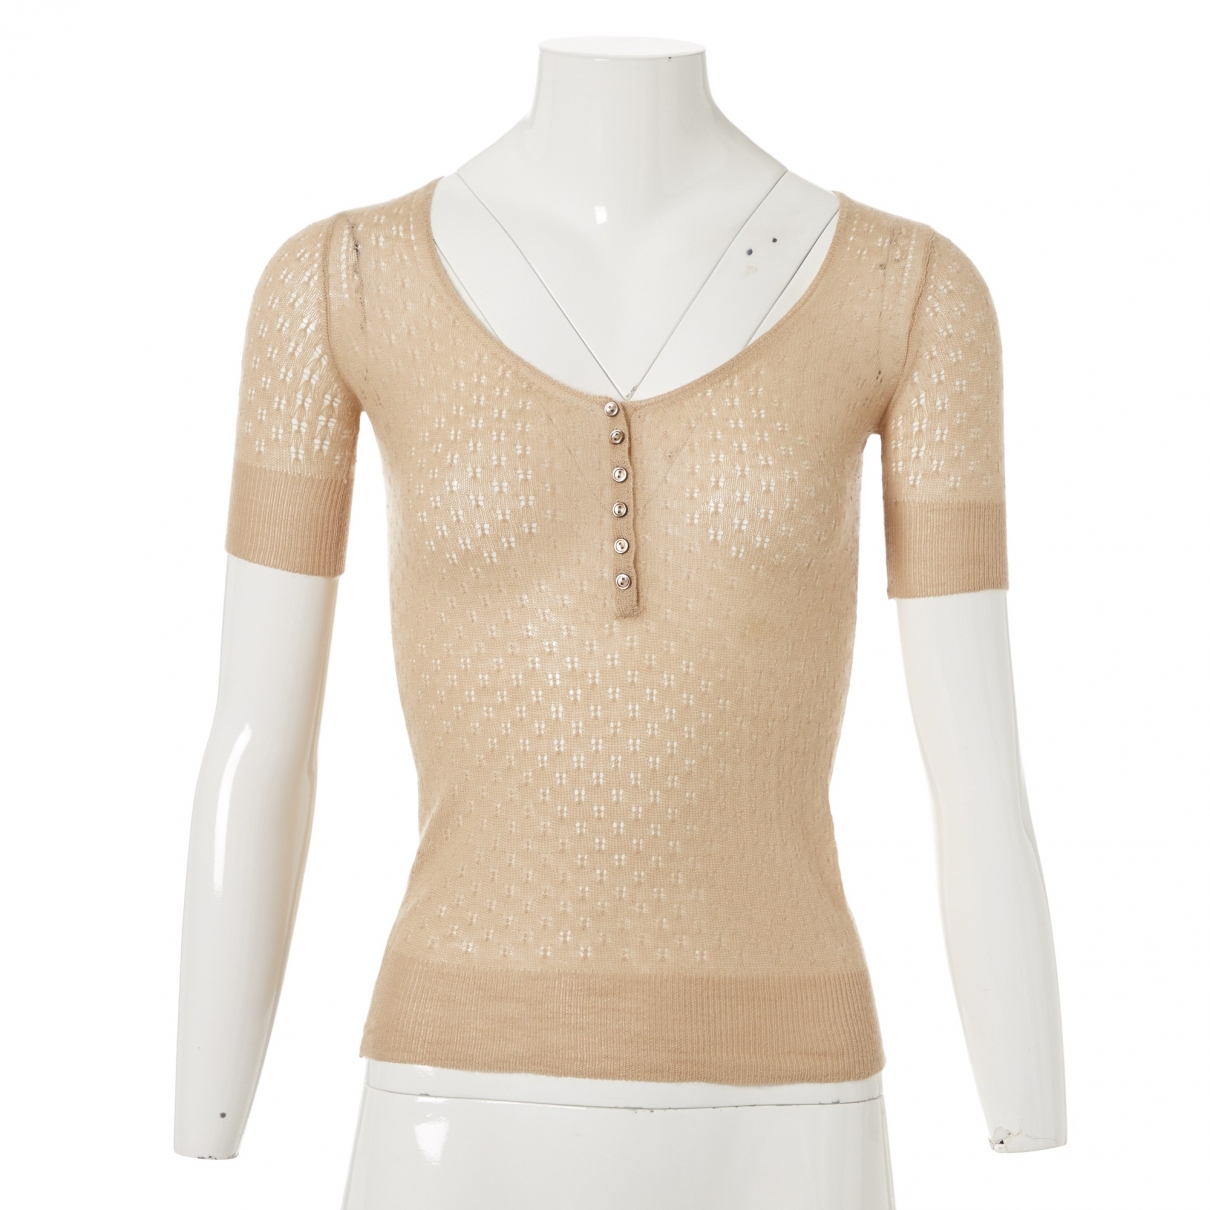 Louis Vuitton \N Beige Cashmere Knitwear for Women S International